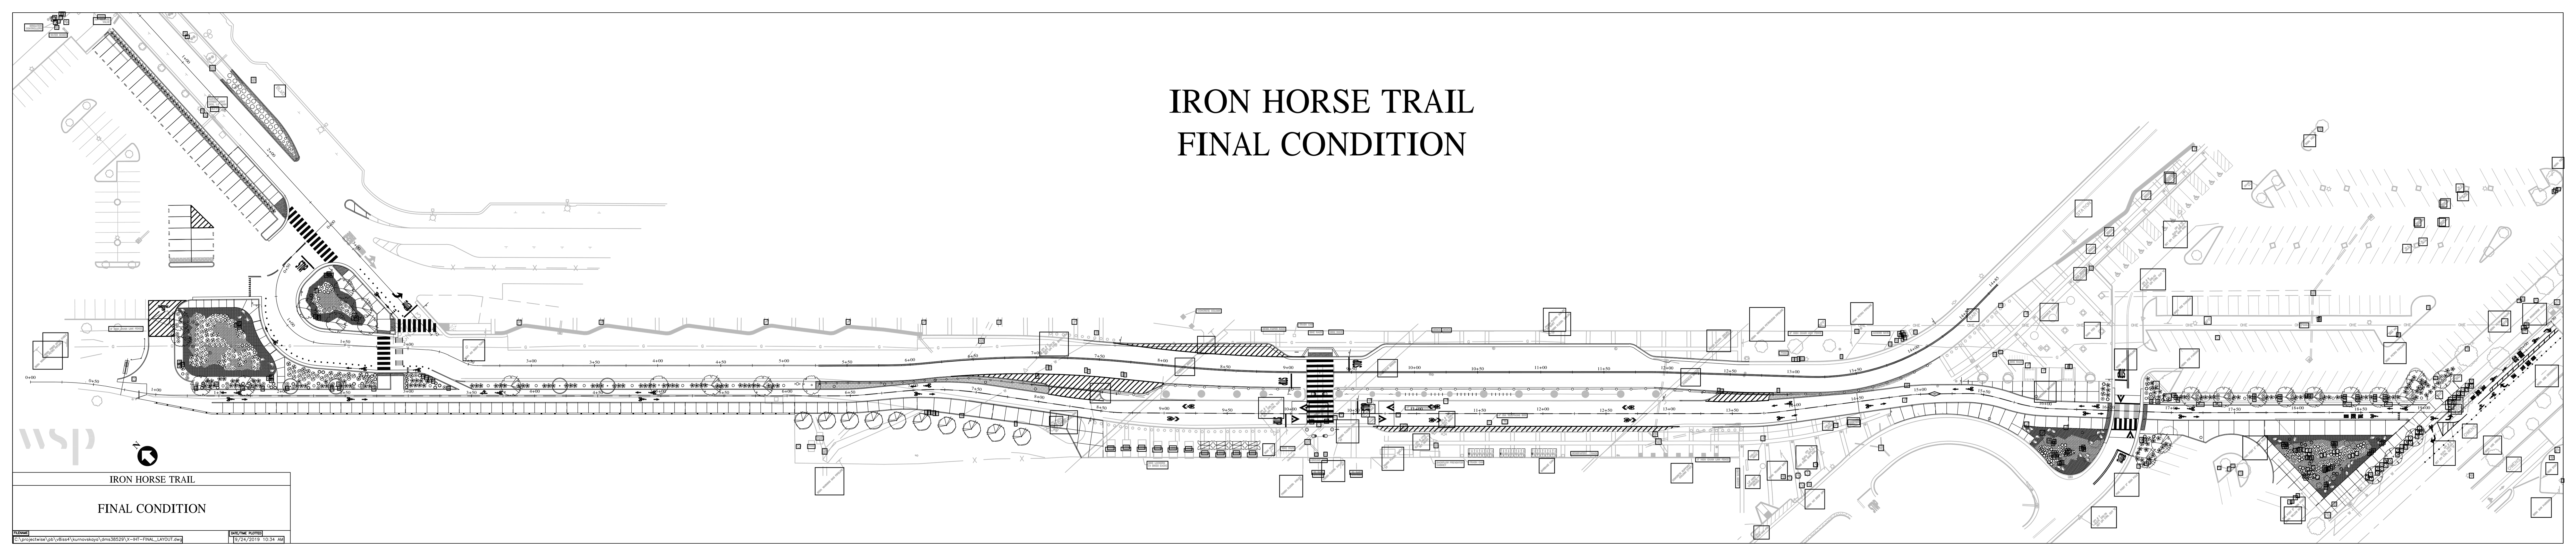 Iron Horse Trail final condition blueprint